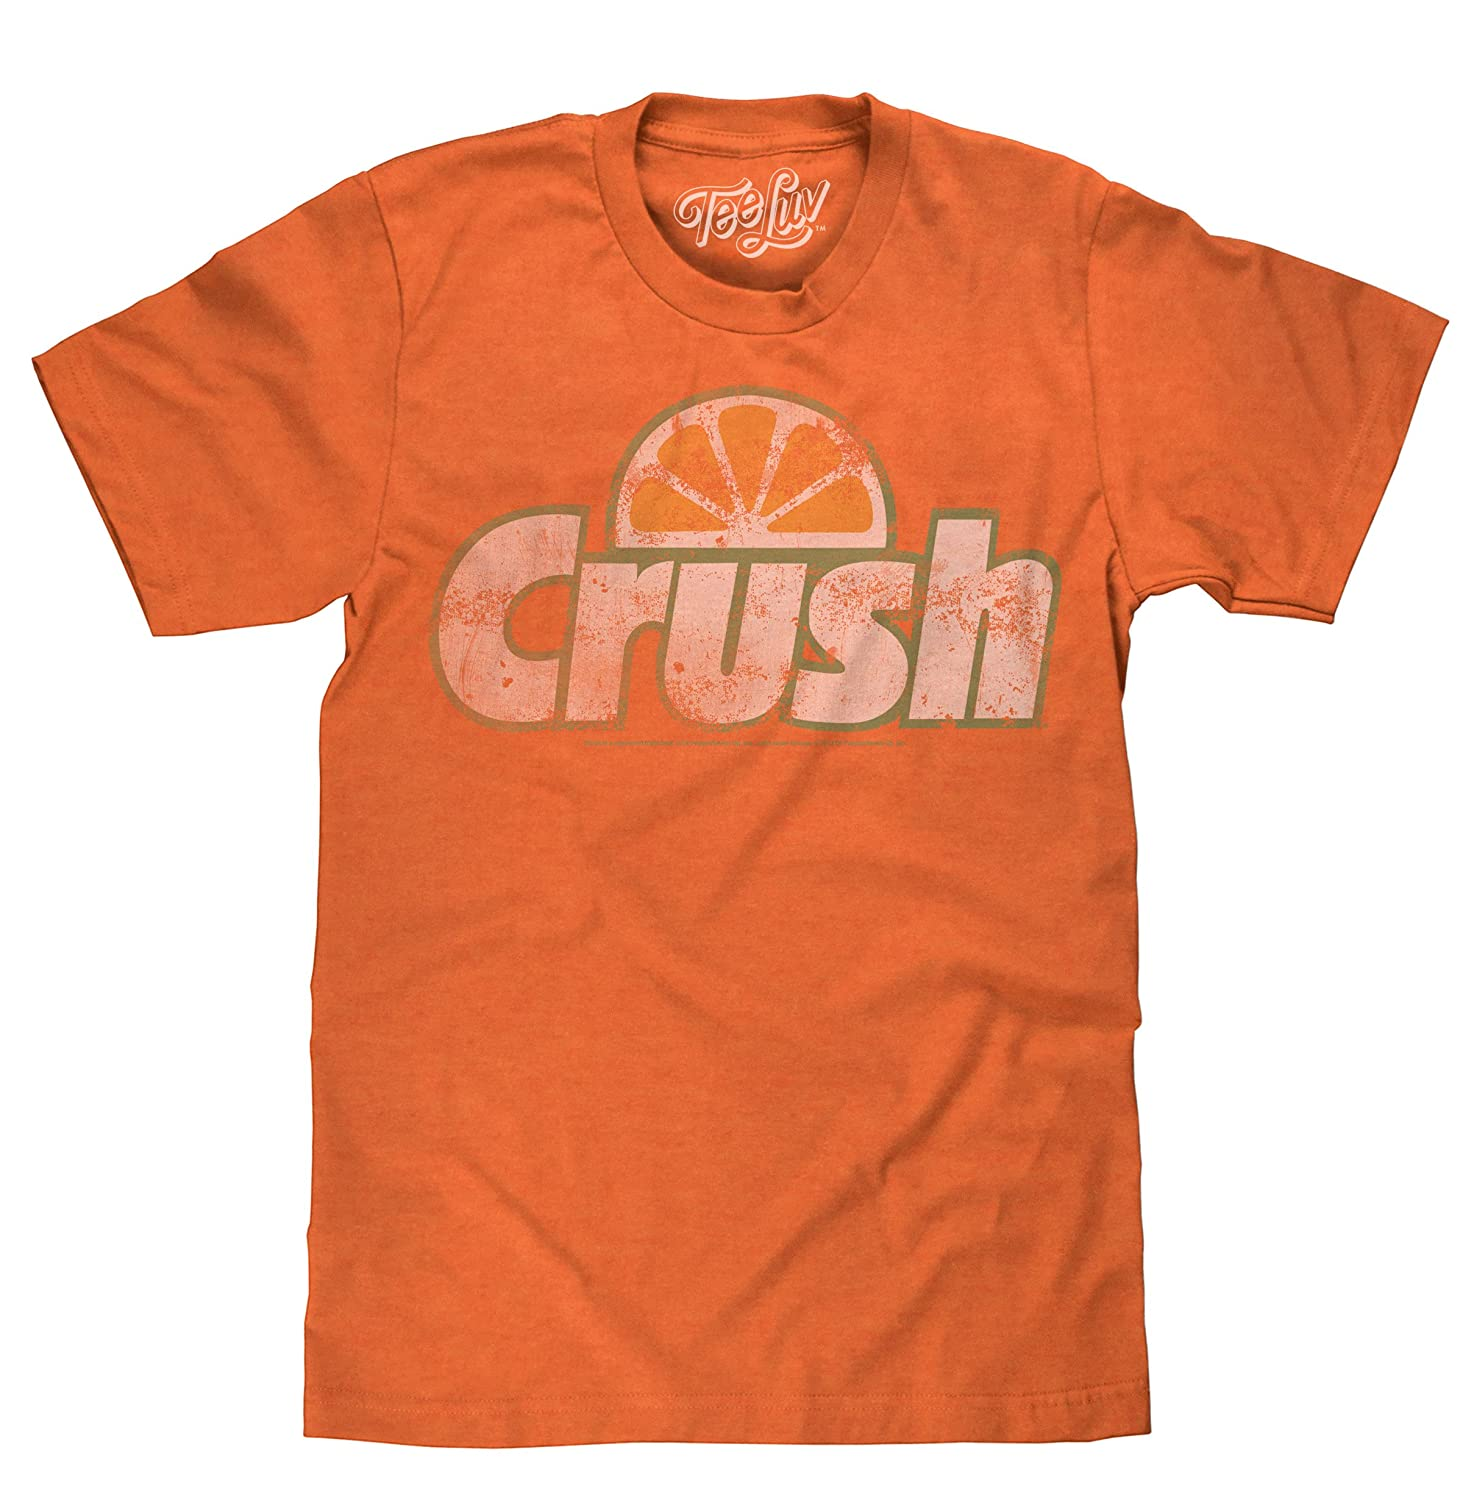 Orange Crush Vintage Licensed T-Shirt | Poly Cotton Blend | Classic Look Tee Luv 22720